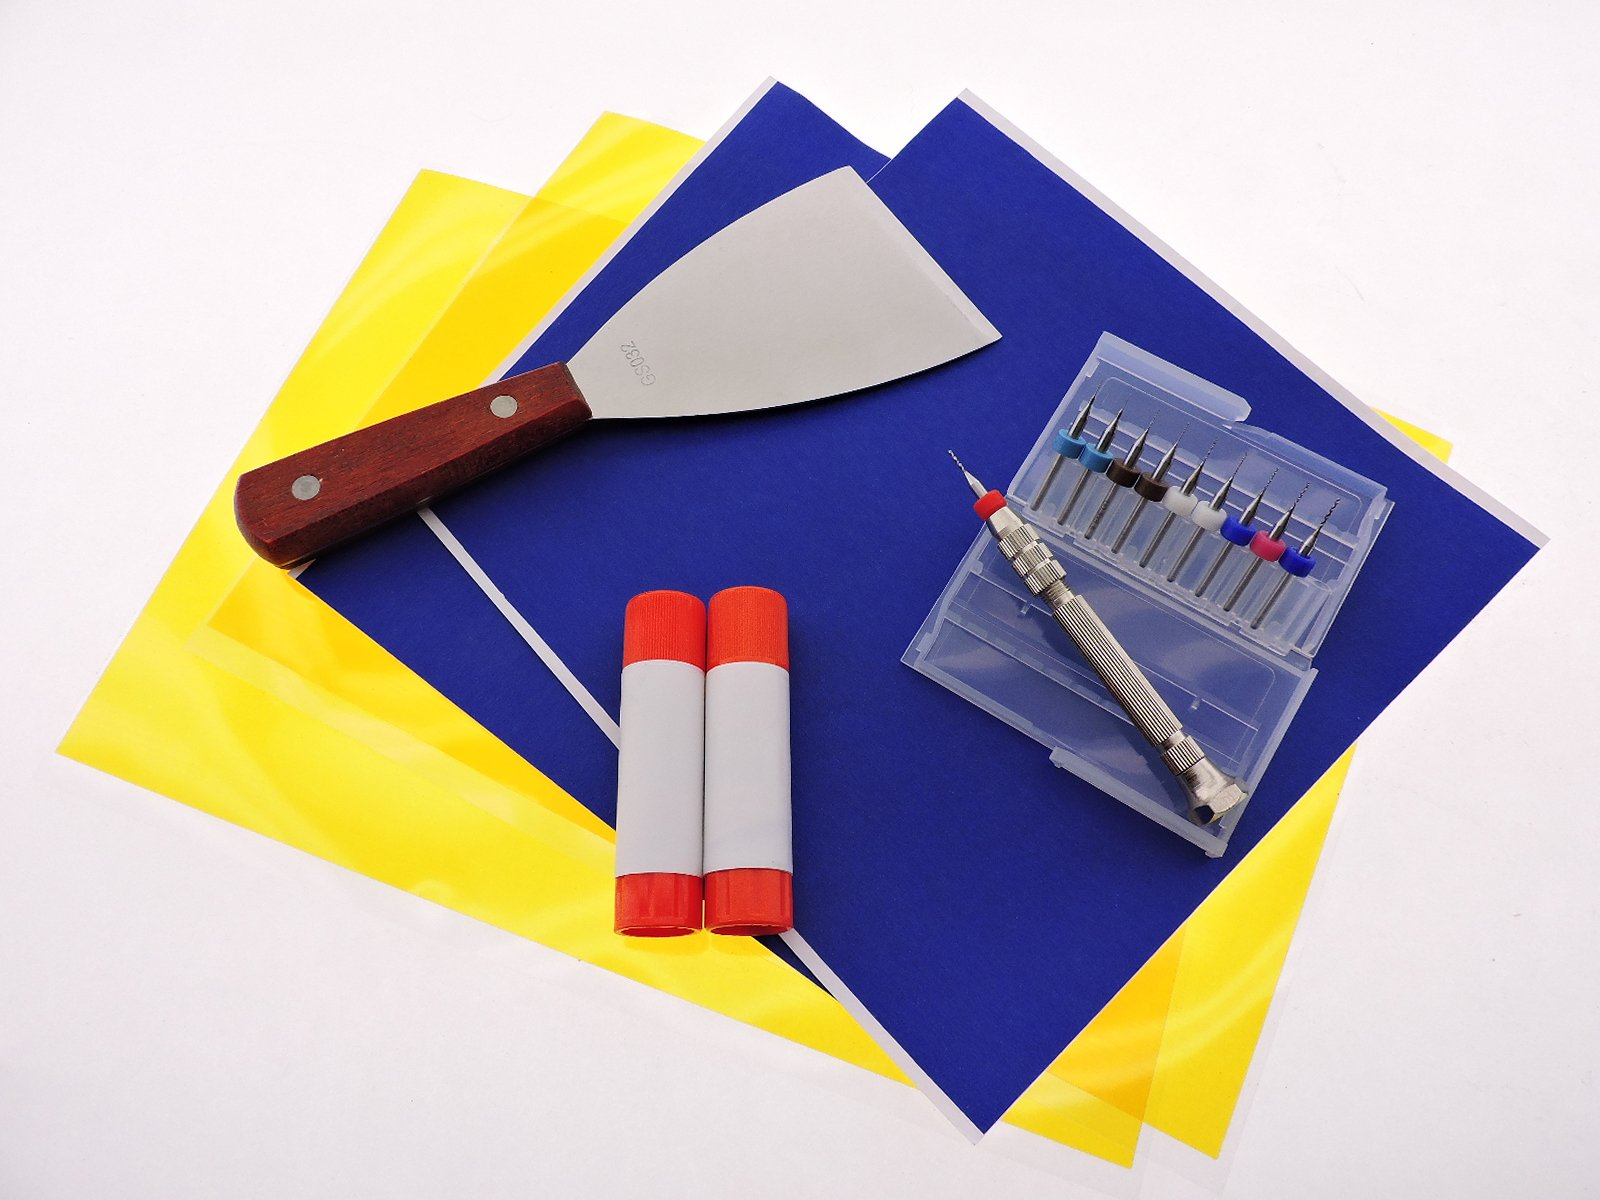 3D Printer Parts Accessories Kit ABS Blue painters tape PLA Kapton Tape + Print bed removal tool + Glue Sticks + (2each) .2mm .3mm .4mm (1each) .5mm .6mm .8mm 1.0mm Clogged Nozzle Bits + Pin-Vise